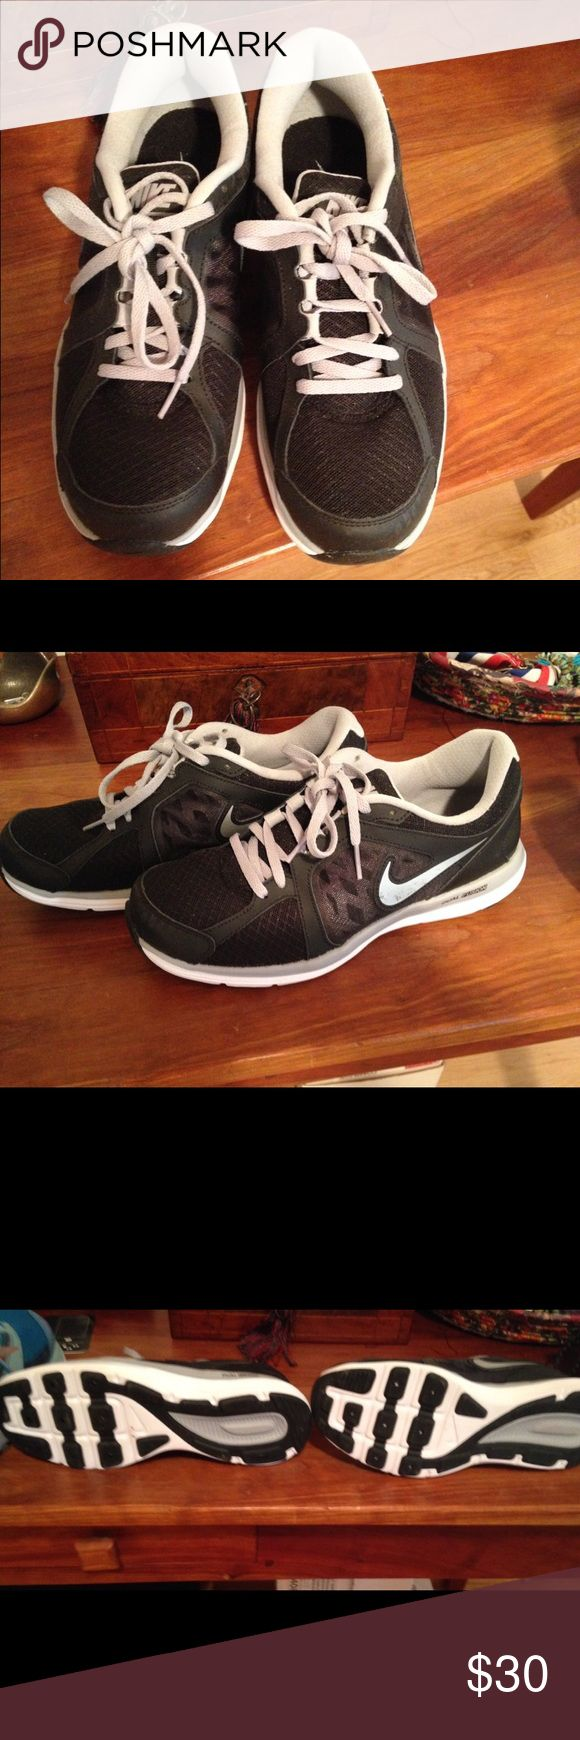 Nike Dual Fusion Women's Shoes In excellent condition; Only worn once. Size 9 Nike Shoes Sneakers